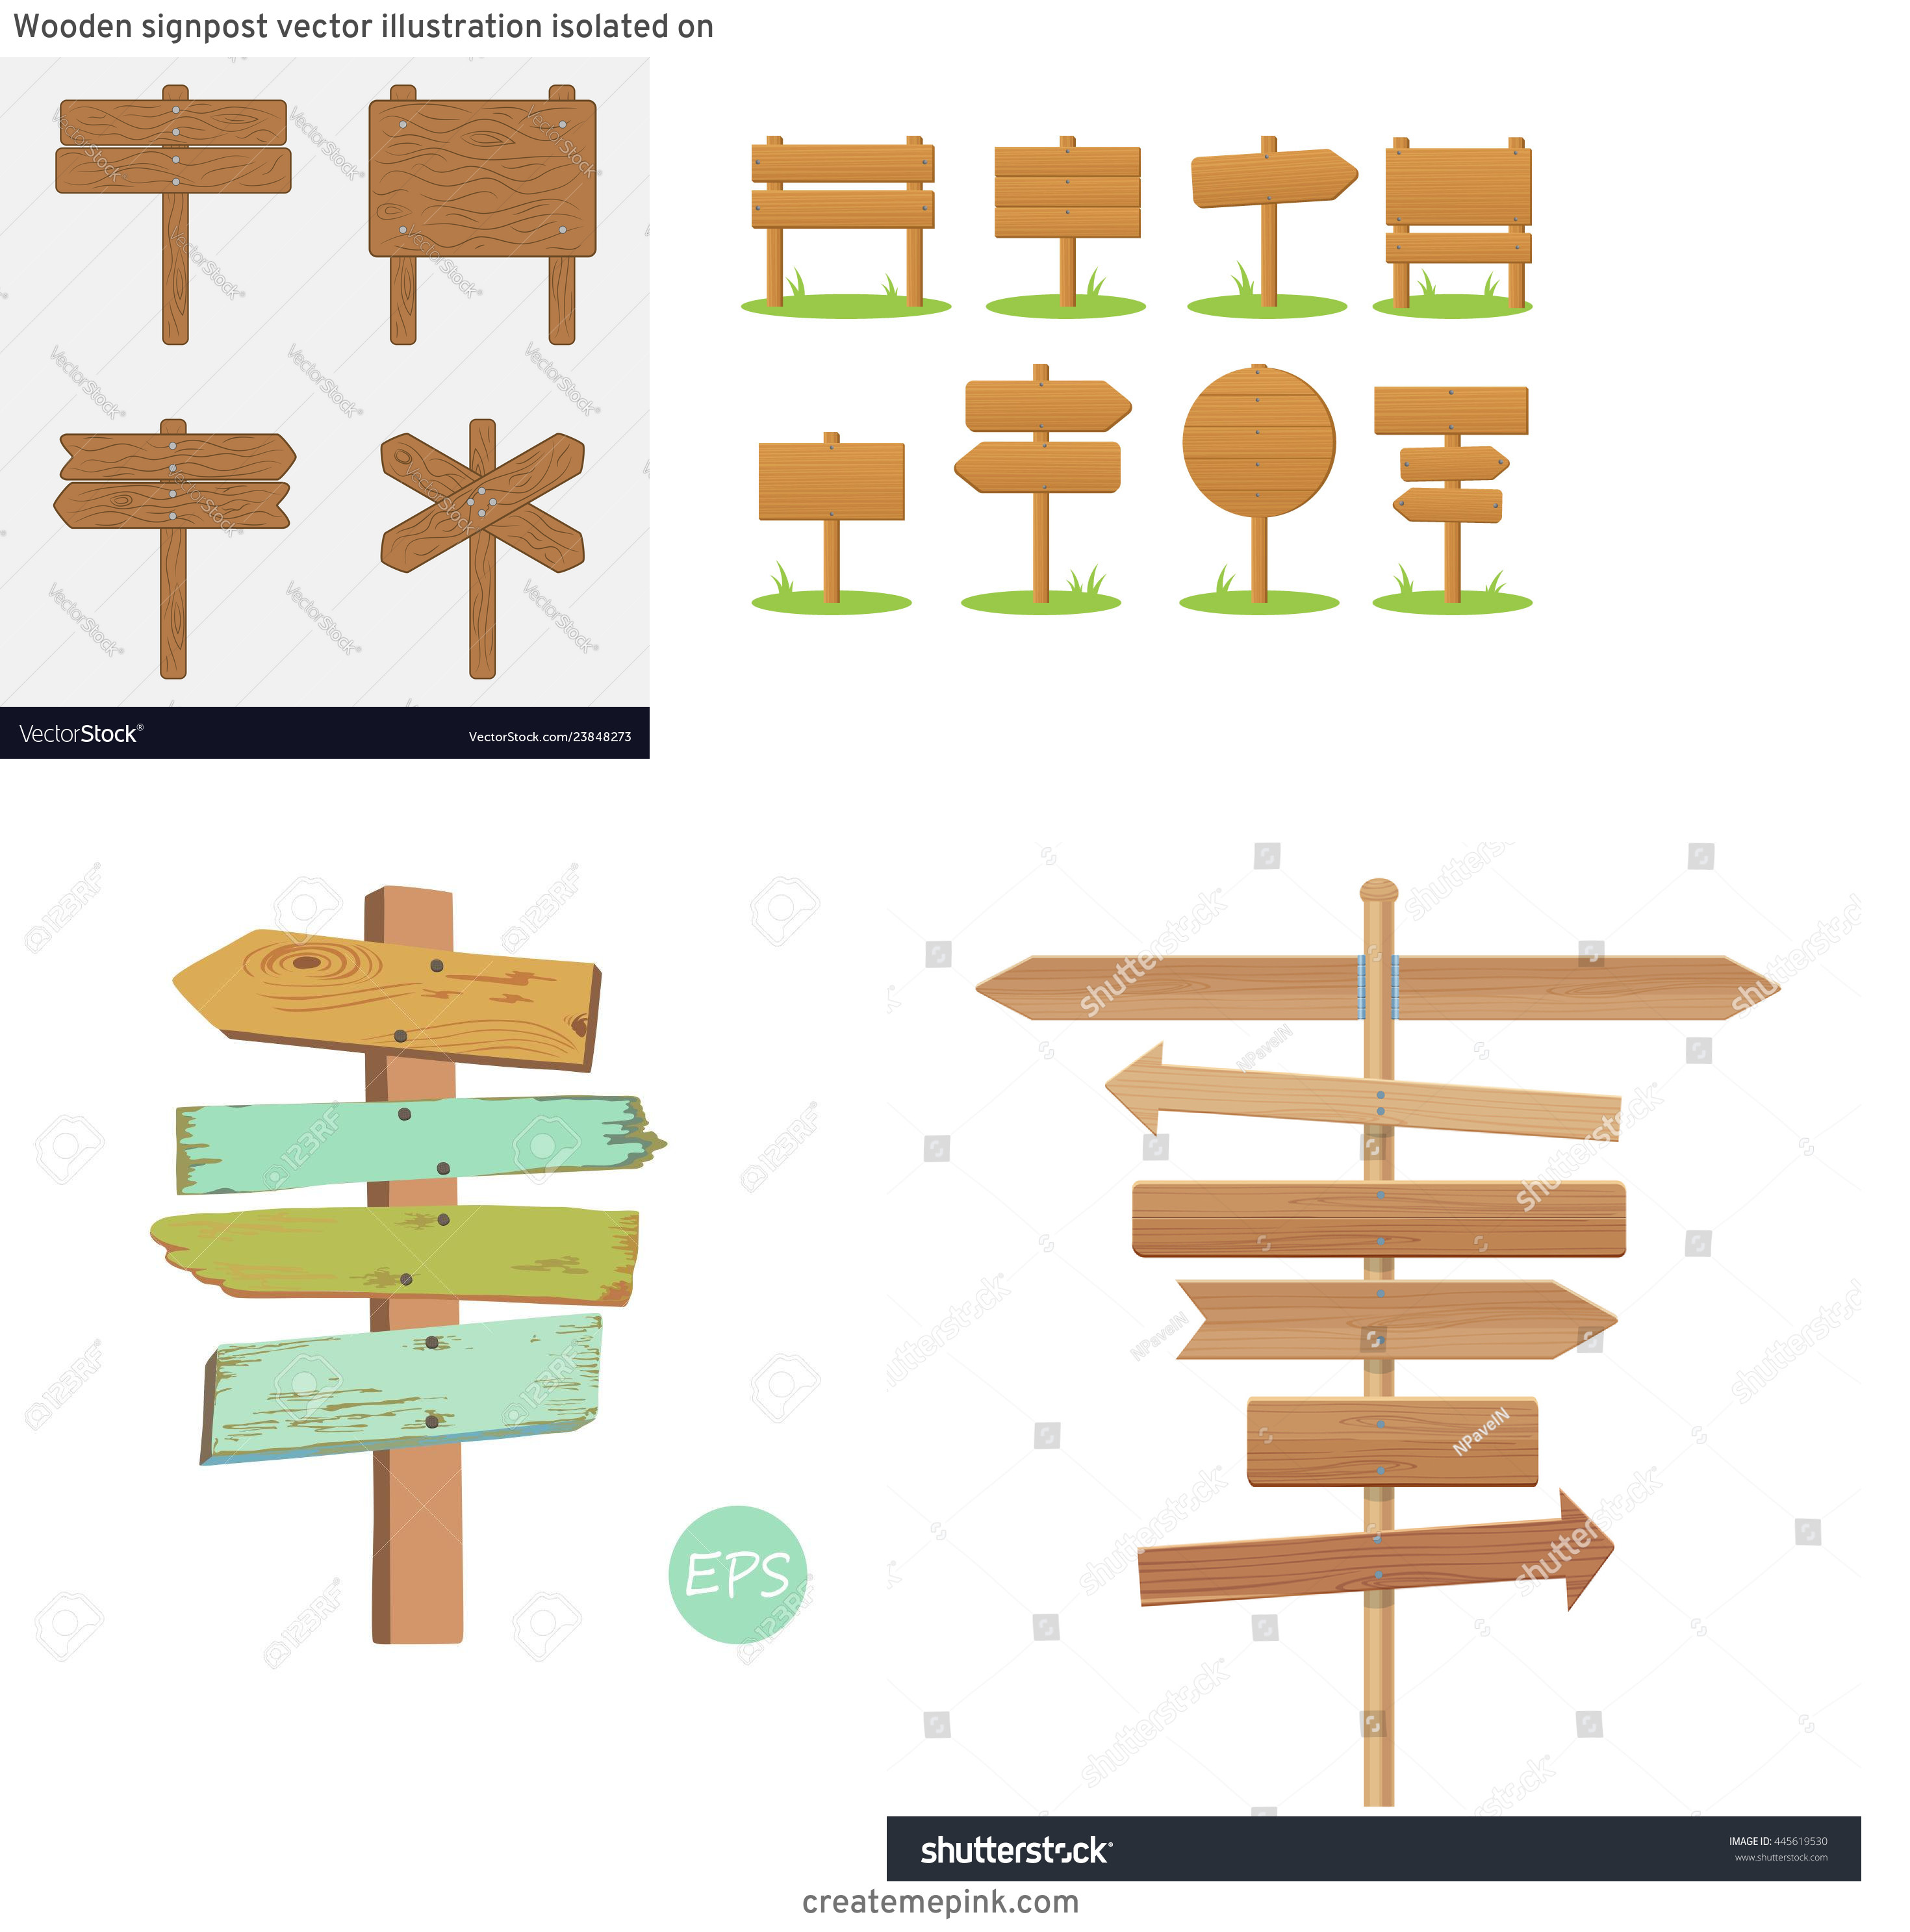 Wooden Sign Post Vector: Wooden Signpost Vector Illustration Isolated On